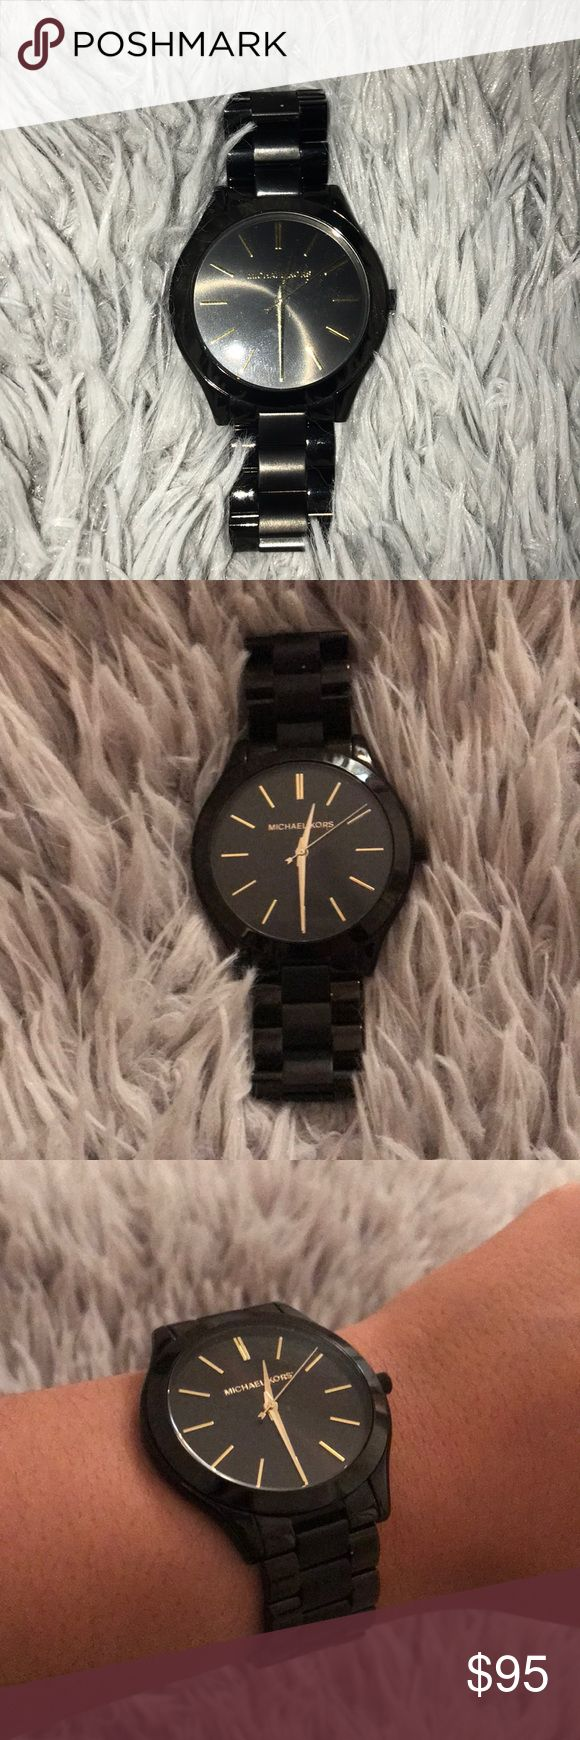 Black Michael Kors Watch Gorgeous Black MK watch goes with everything. Don't have extra links but fits size small-medium wrist. Michael Kors Other